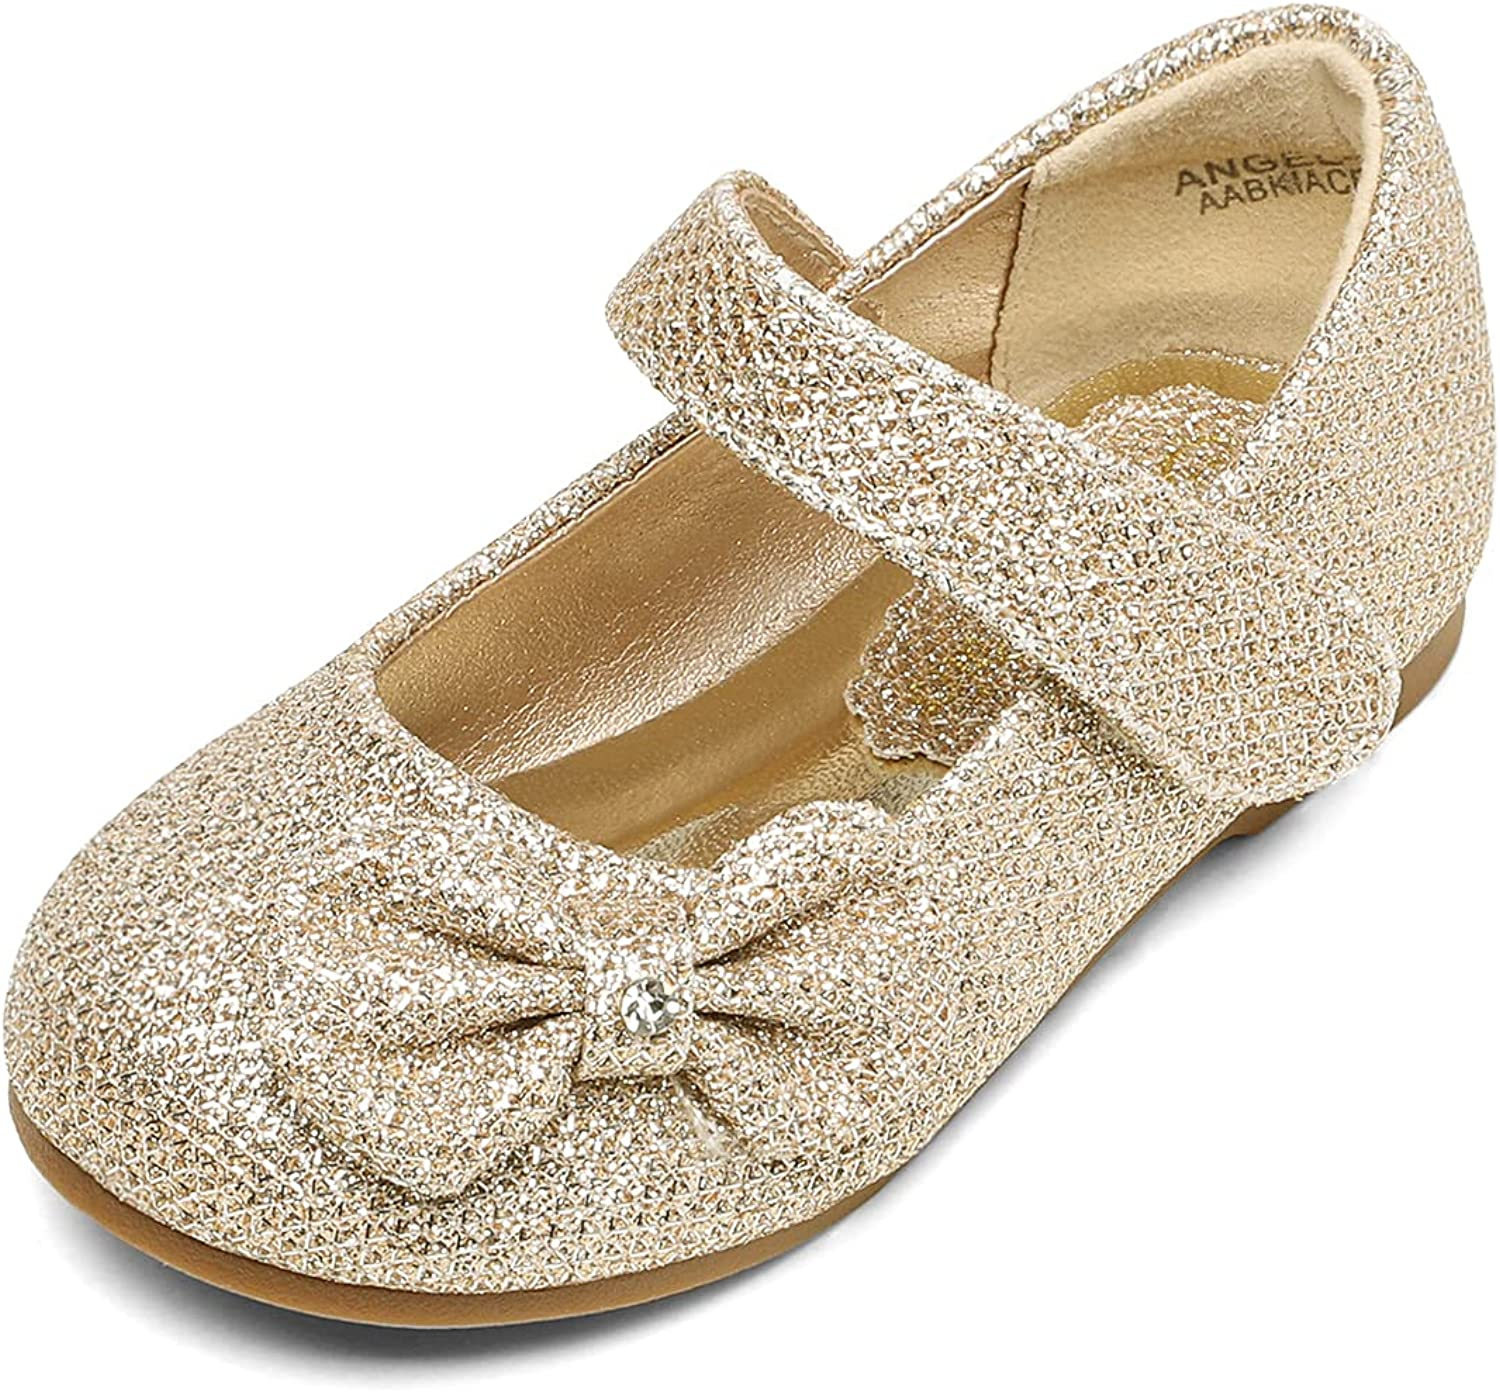 DREAM PAIRS Adorable Mary Jane Side Strap Finally resale start Ballerina Bow Buckle F online shop